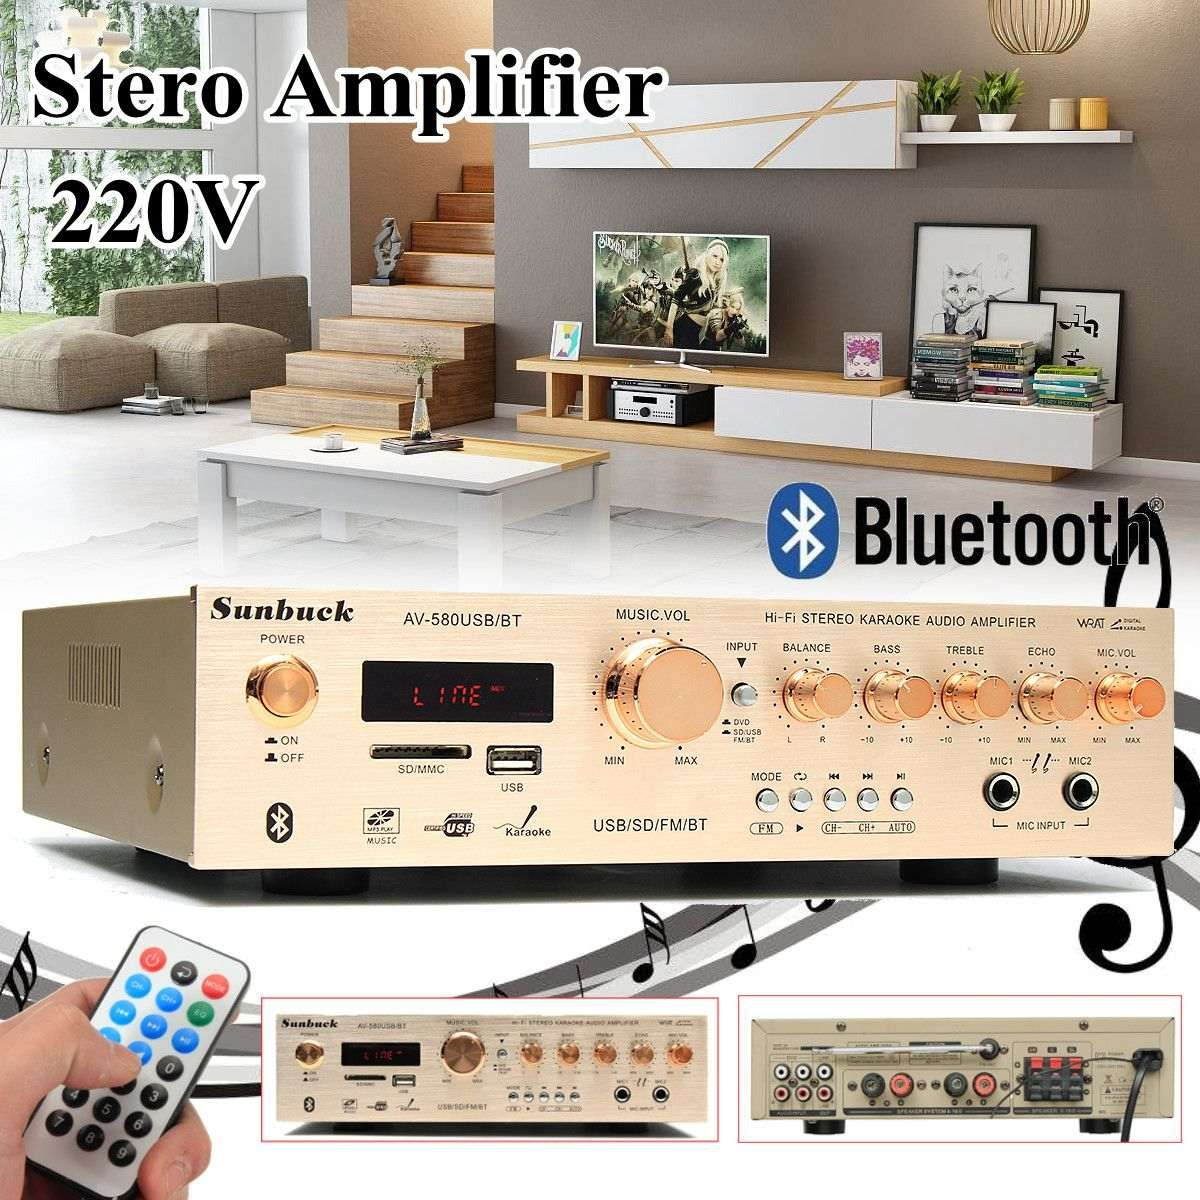 3* 400W 580BT 5CH 220V Stereo Amplifier Sound Mode Audio Music Booster Card Remote Control Built-in Bluetooth Amplifier For home